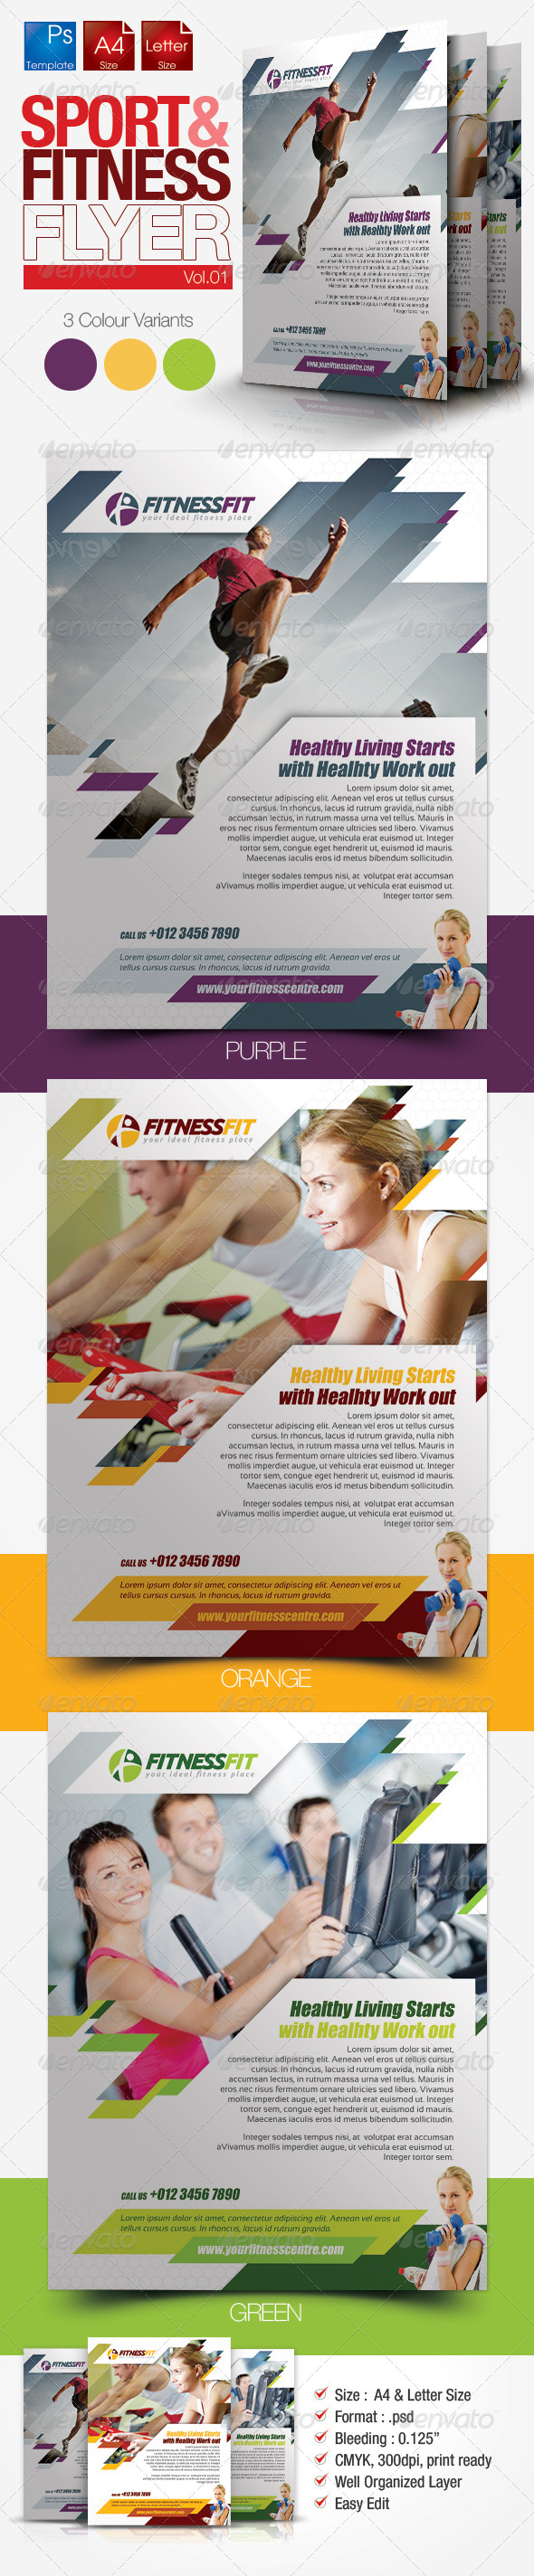 Fitness Flyer Vol.1 - Sports Events